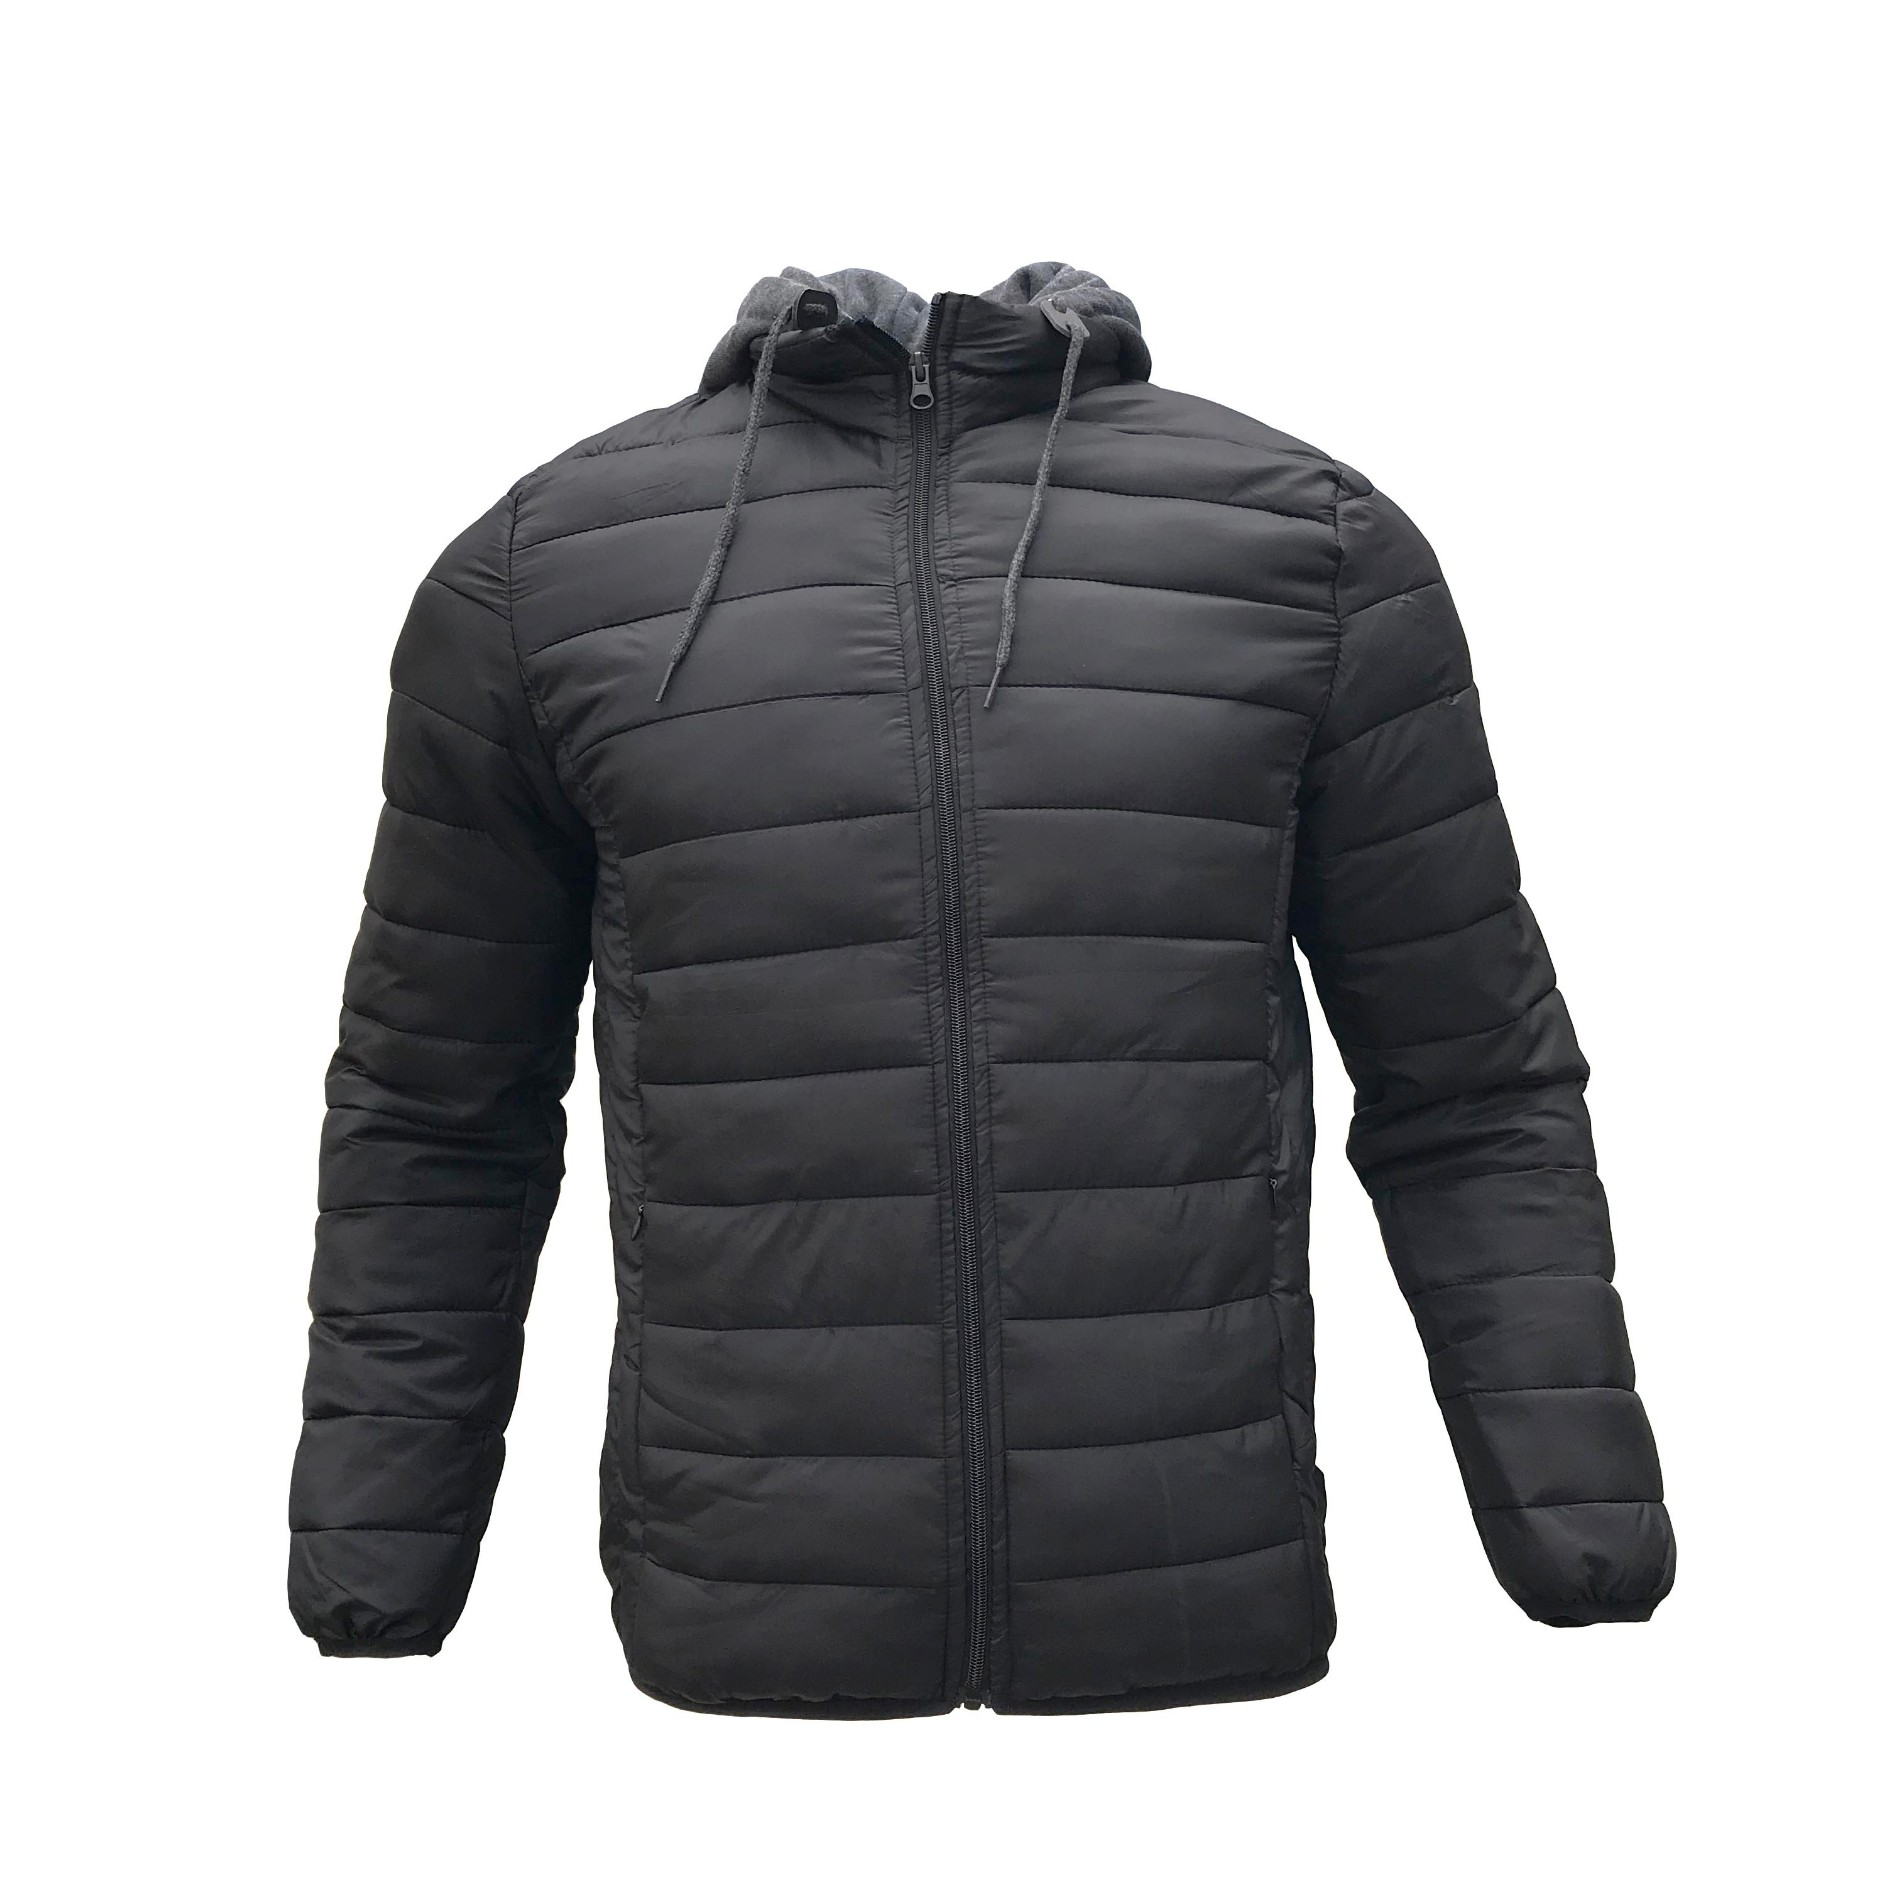 Men's High Quality Winter Jacket Mens Padded Coat With Hooded